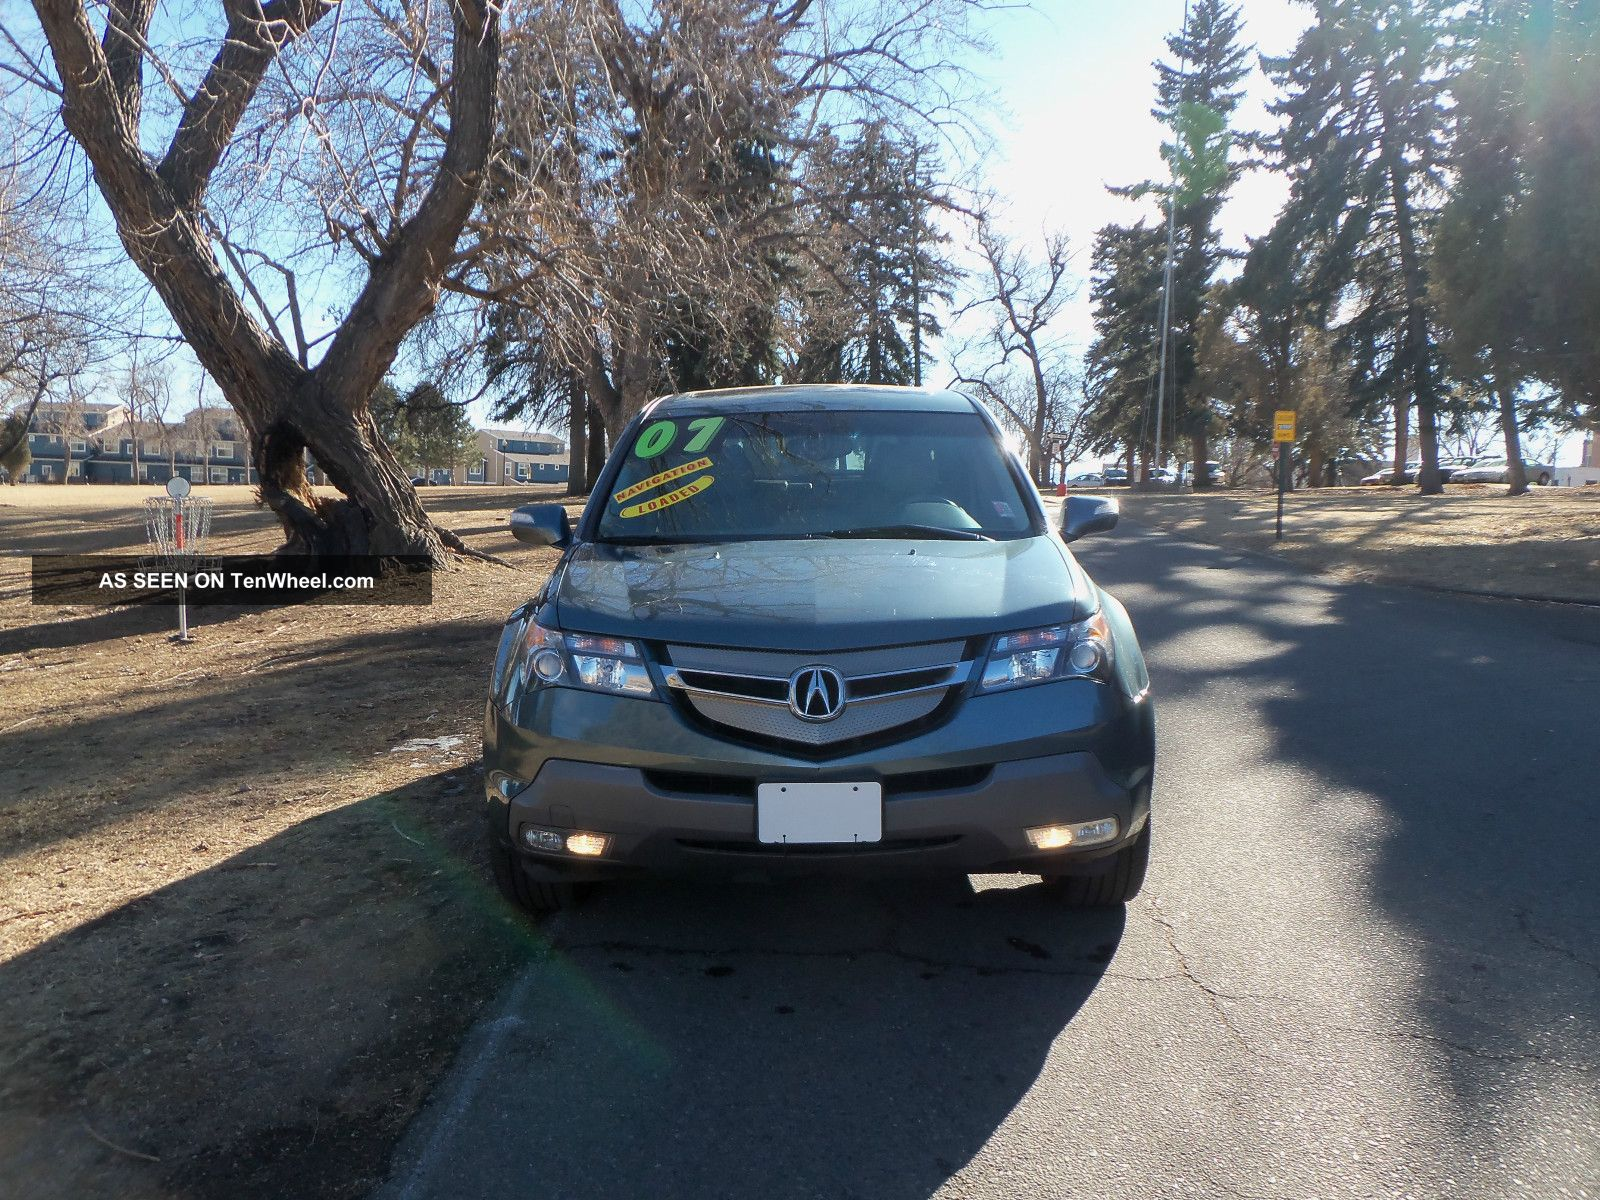 2007 Acura Mdx Sport Package MDX photo